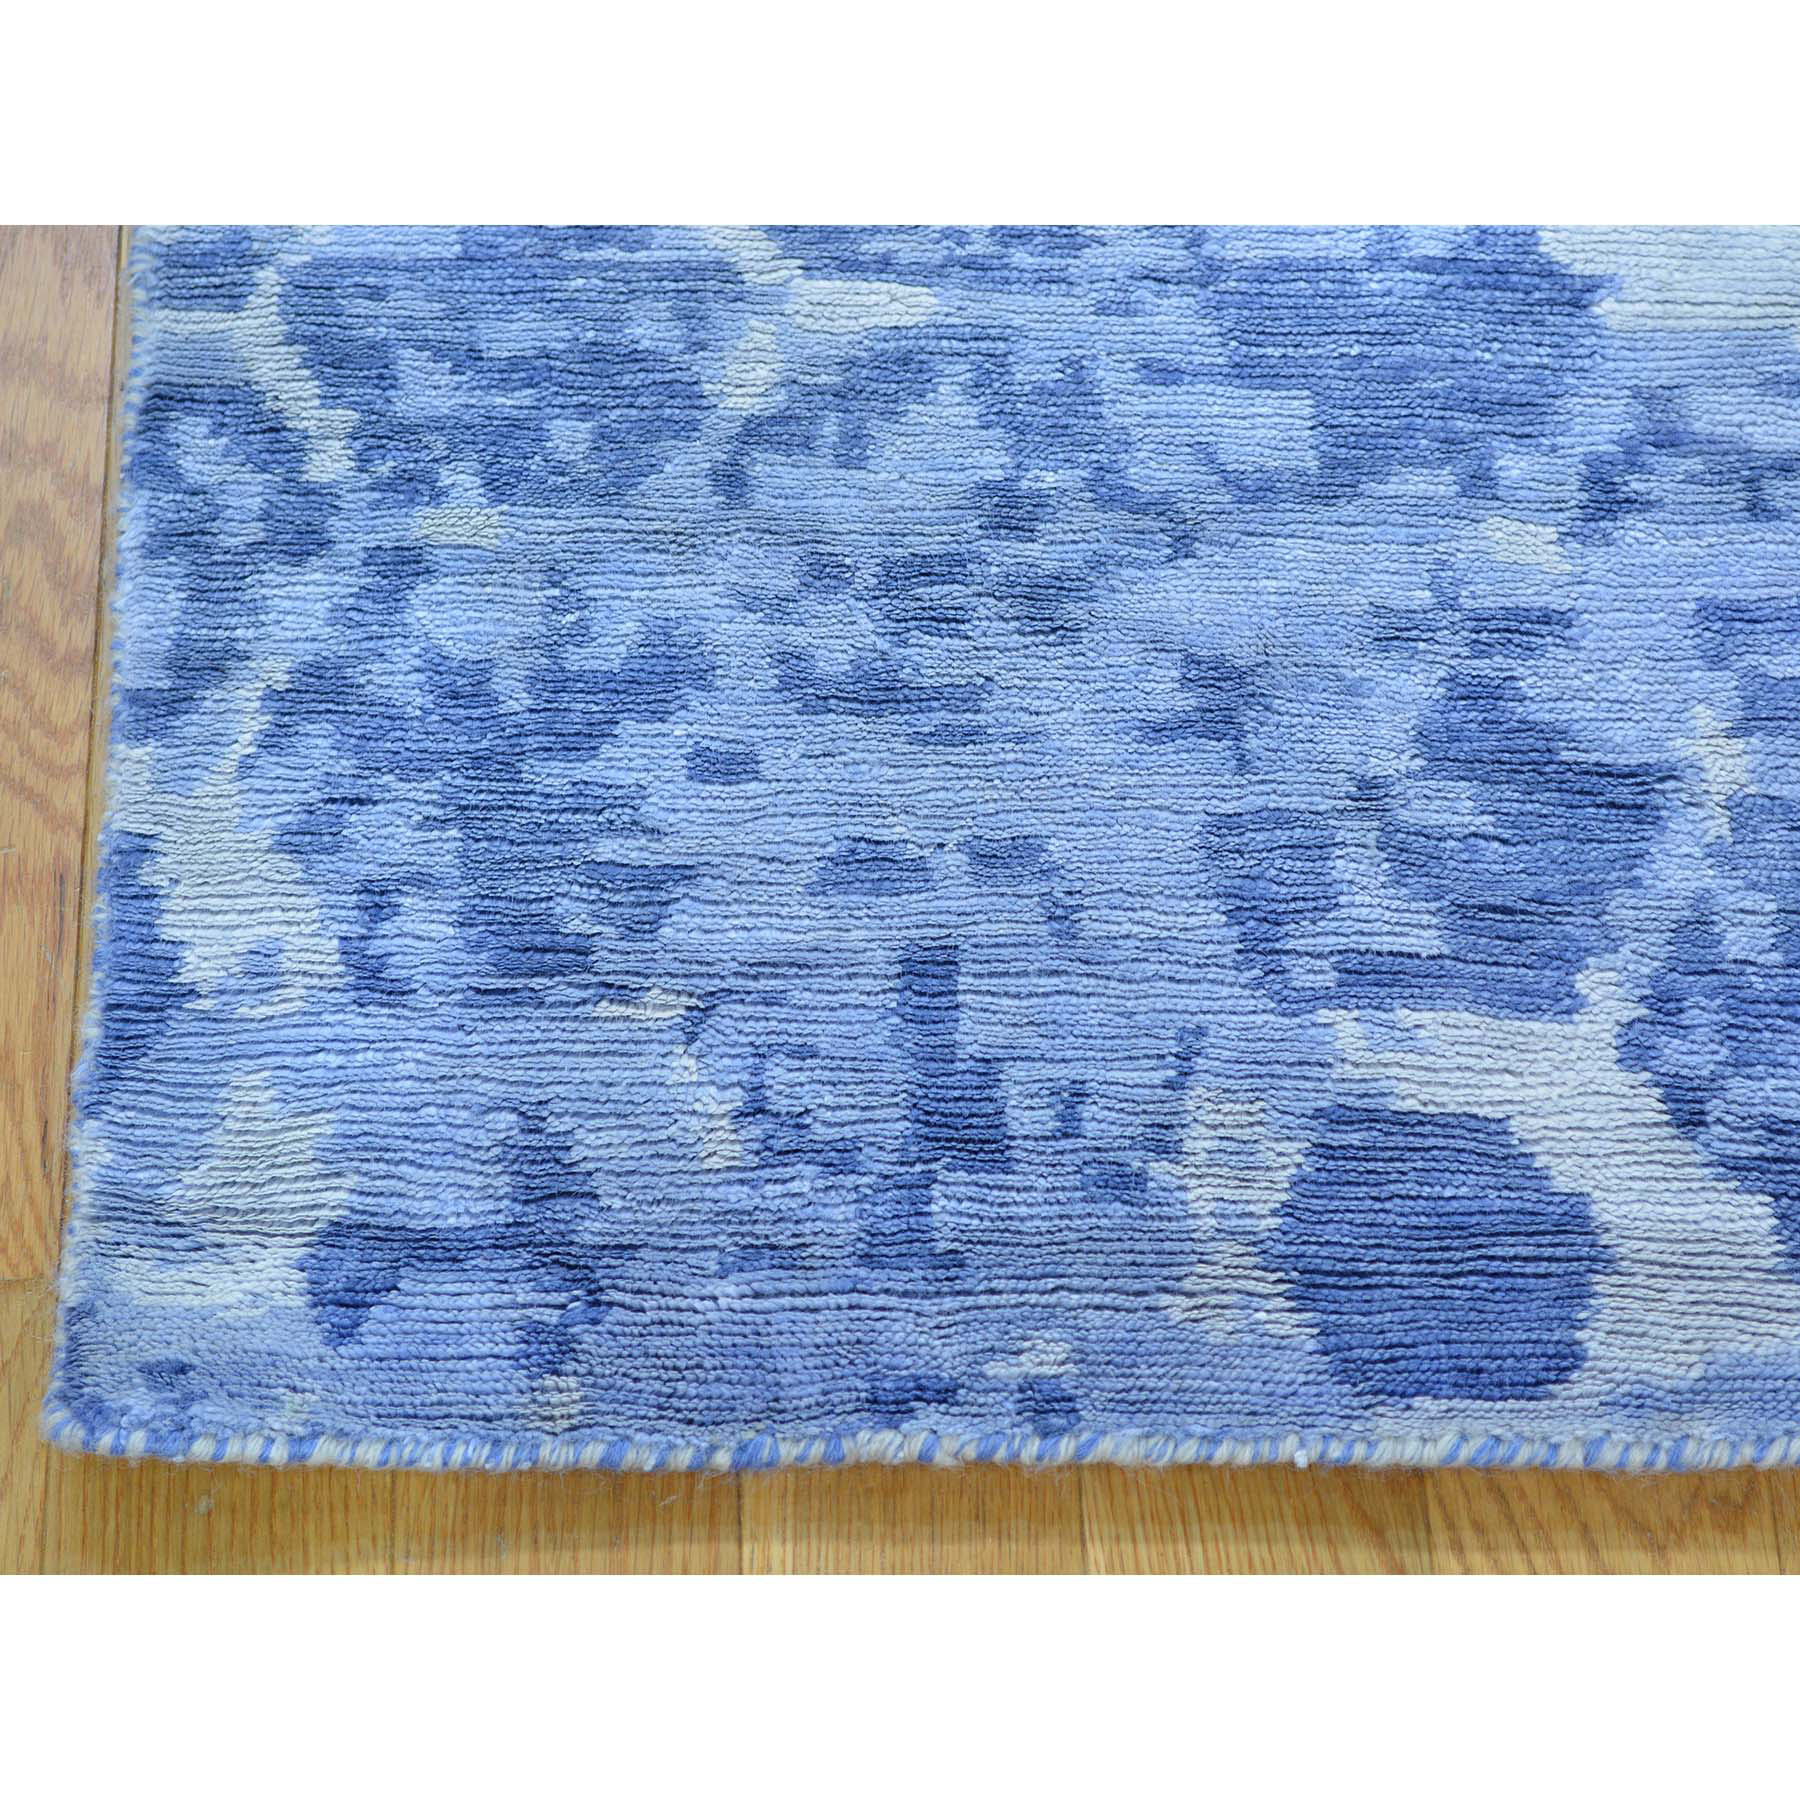 2- x 3- THE HONEYCOMB Hand Knotted Award Winning Design Oriental Rug